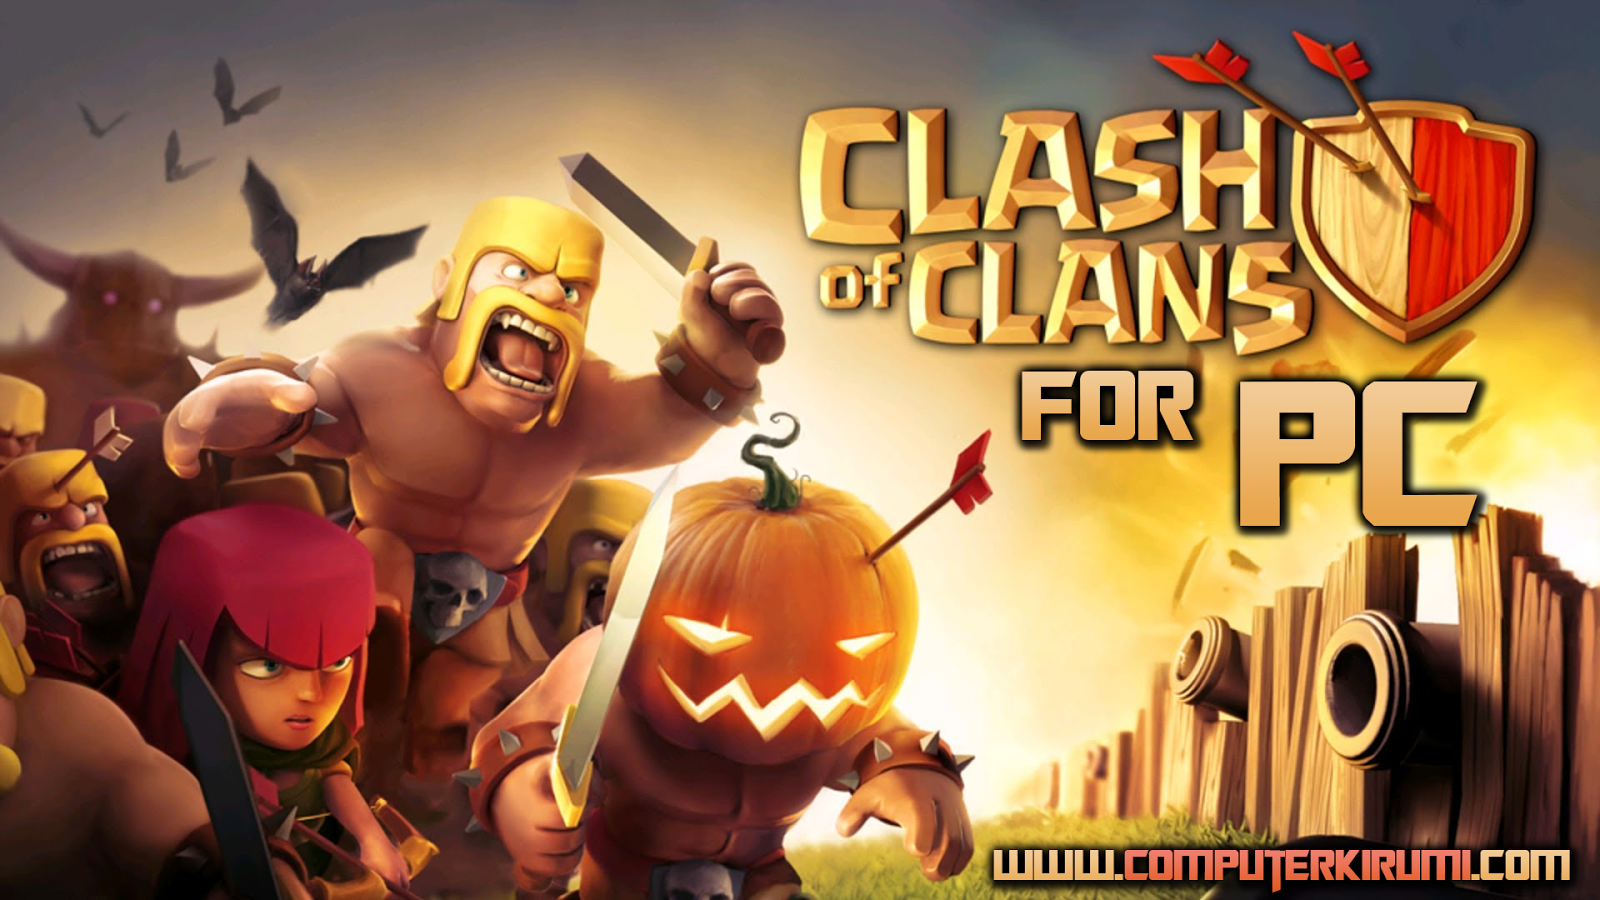 [No Bluestacks] Download Clash Of Clans For PC Free [ Windows xp,7,8,8.1 - Android ]